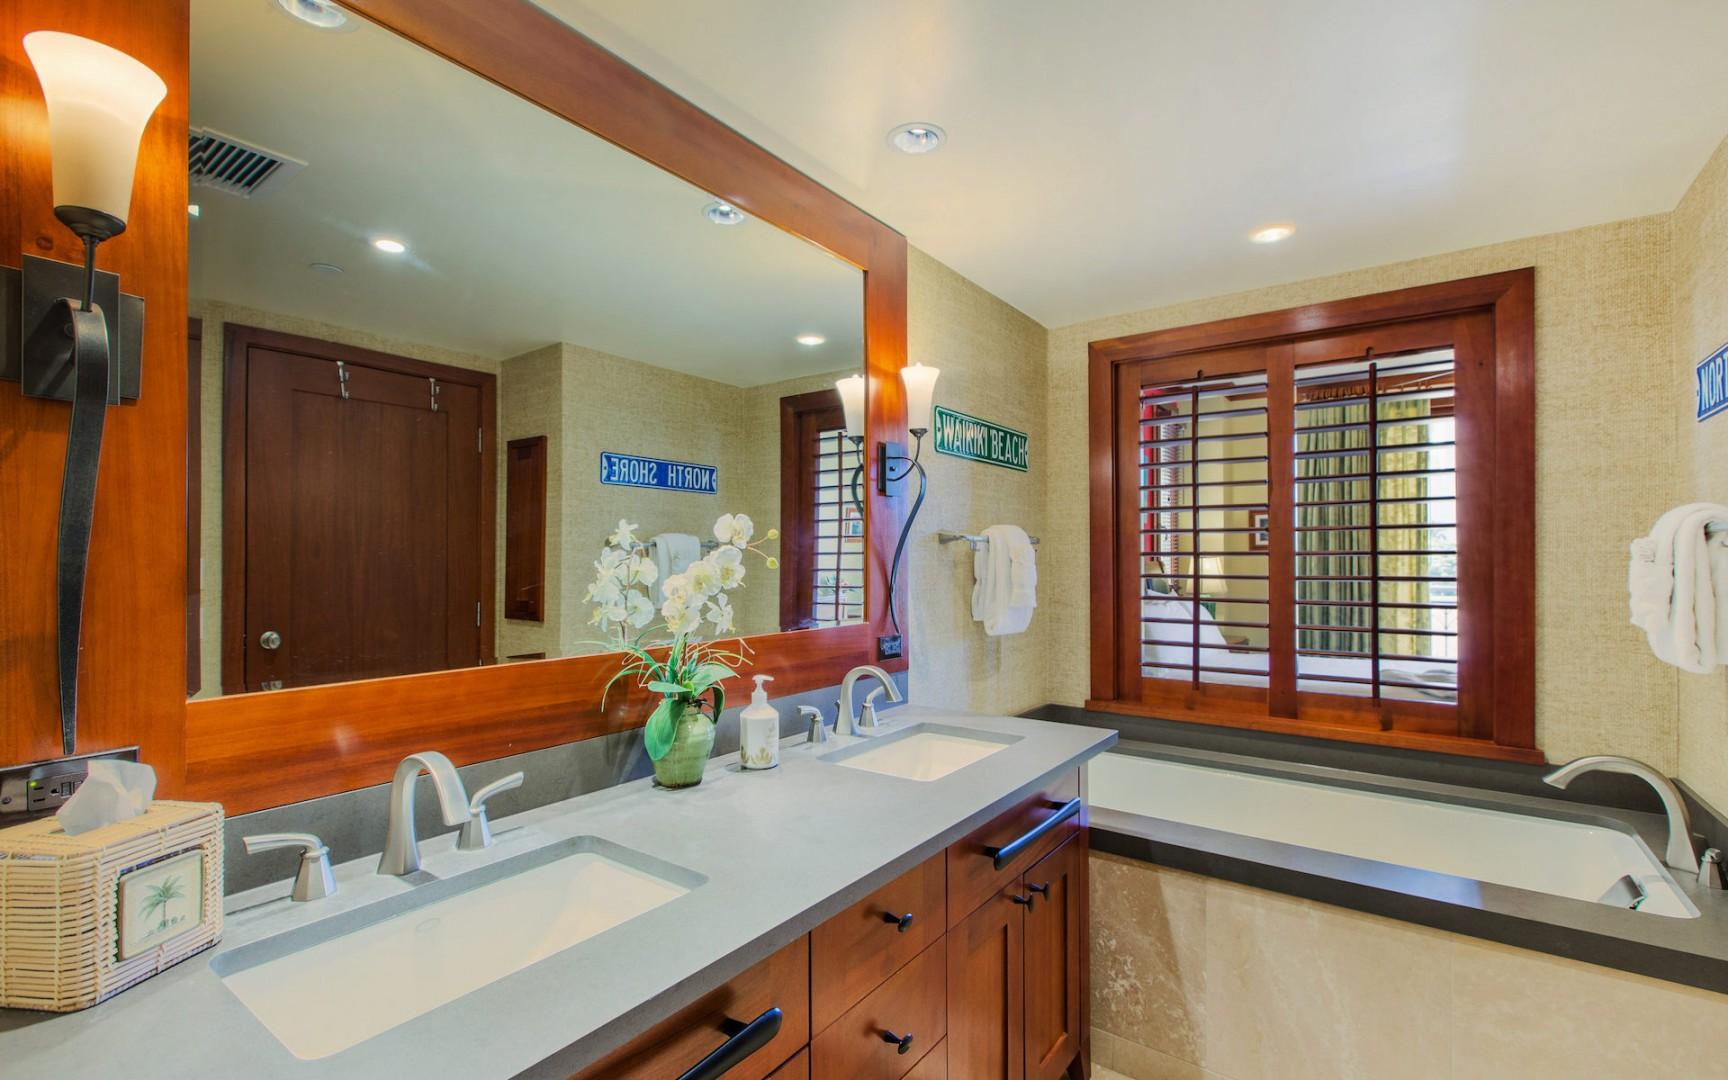 Master bathroom with deep soaking tub, separate tiled/glass shower, dual sinks, mahogany plantation shutters open/close between the bathroom and the bedroom. A starter supply of bath amenities and toilet paper is included.